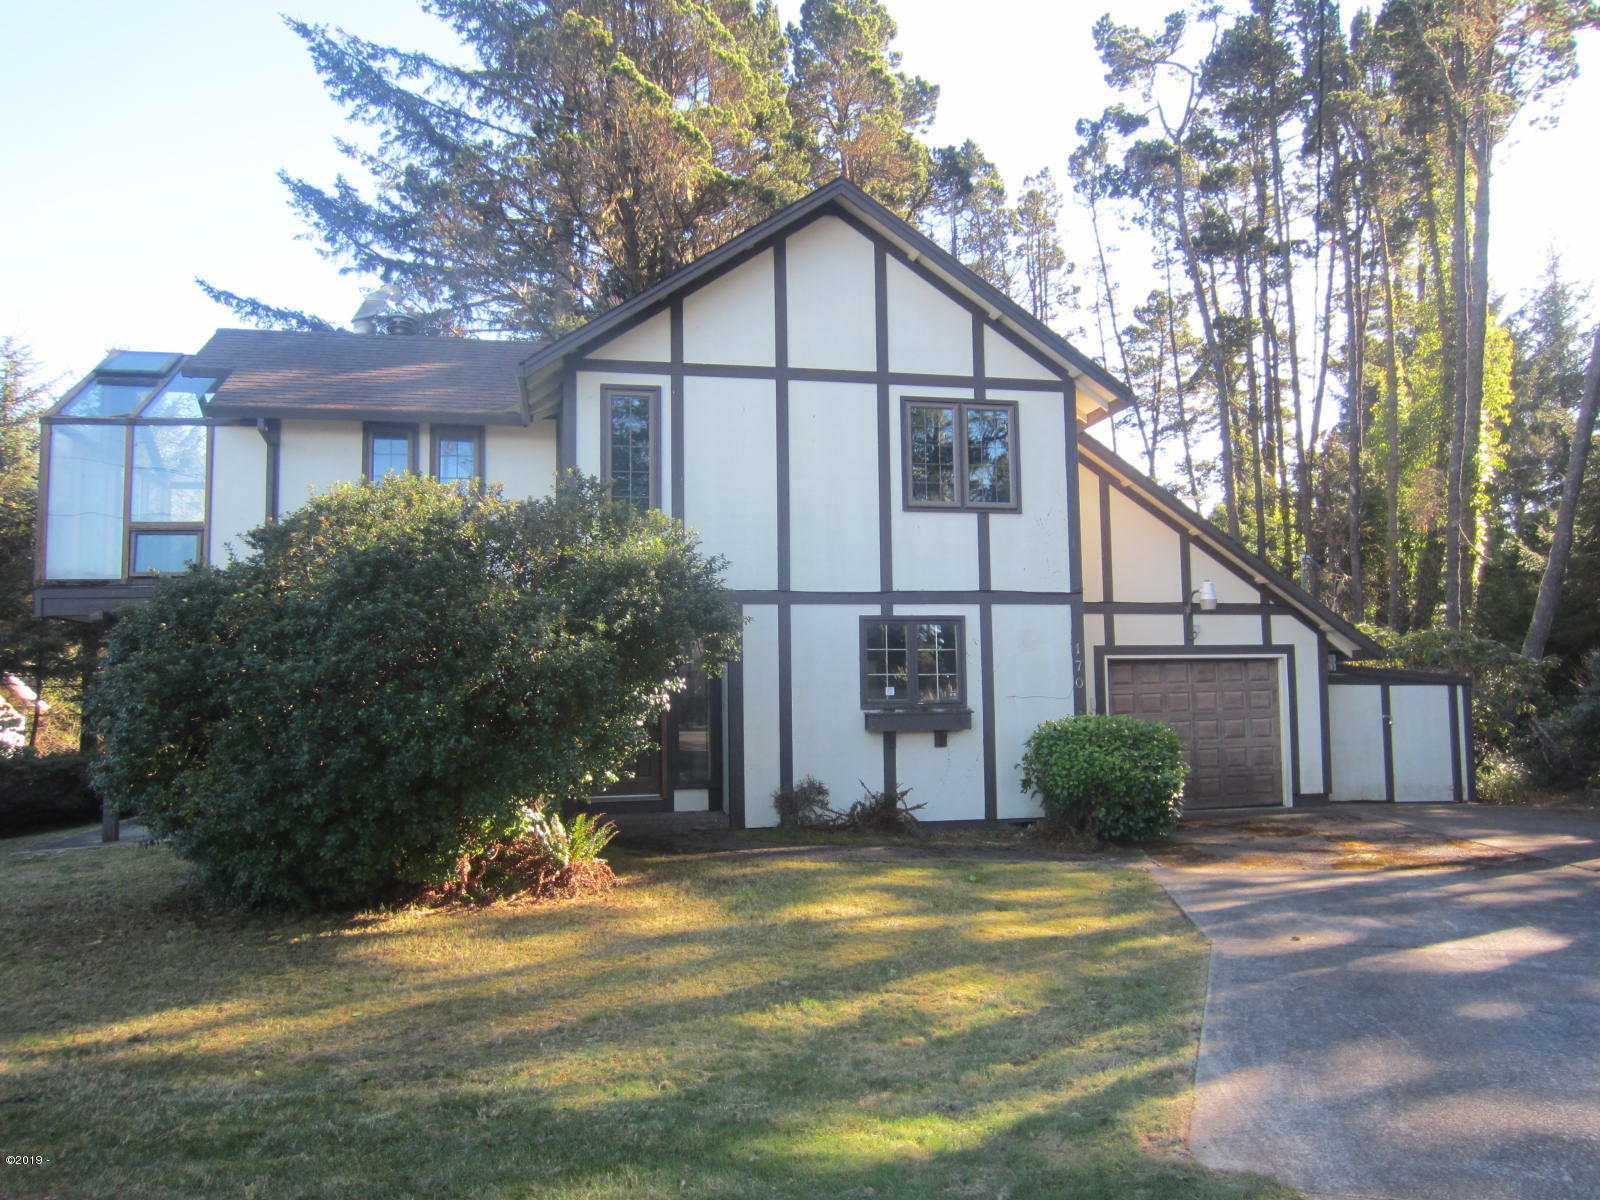 170 Cliff St, Depoe Bay, OR 97341 - front view